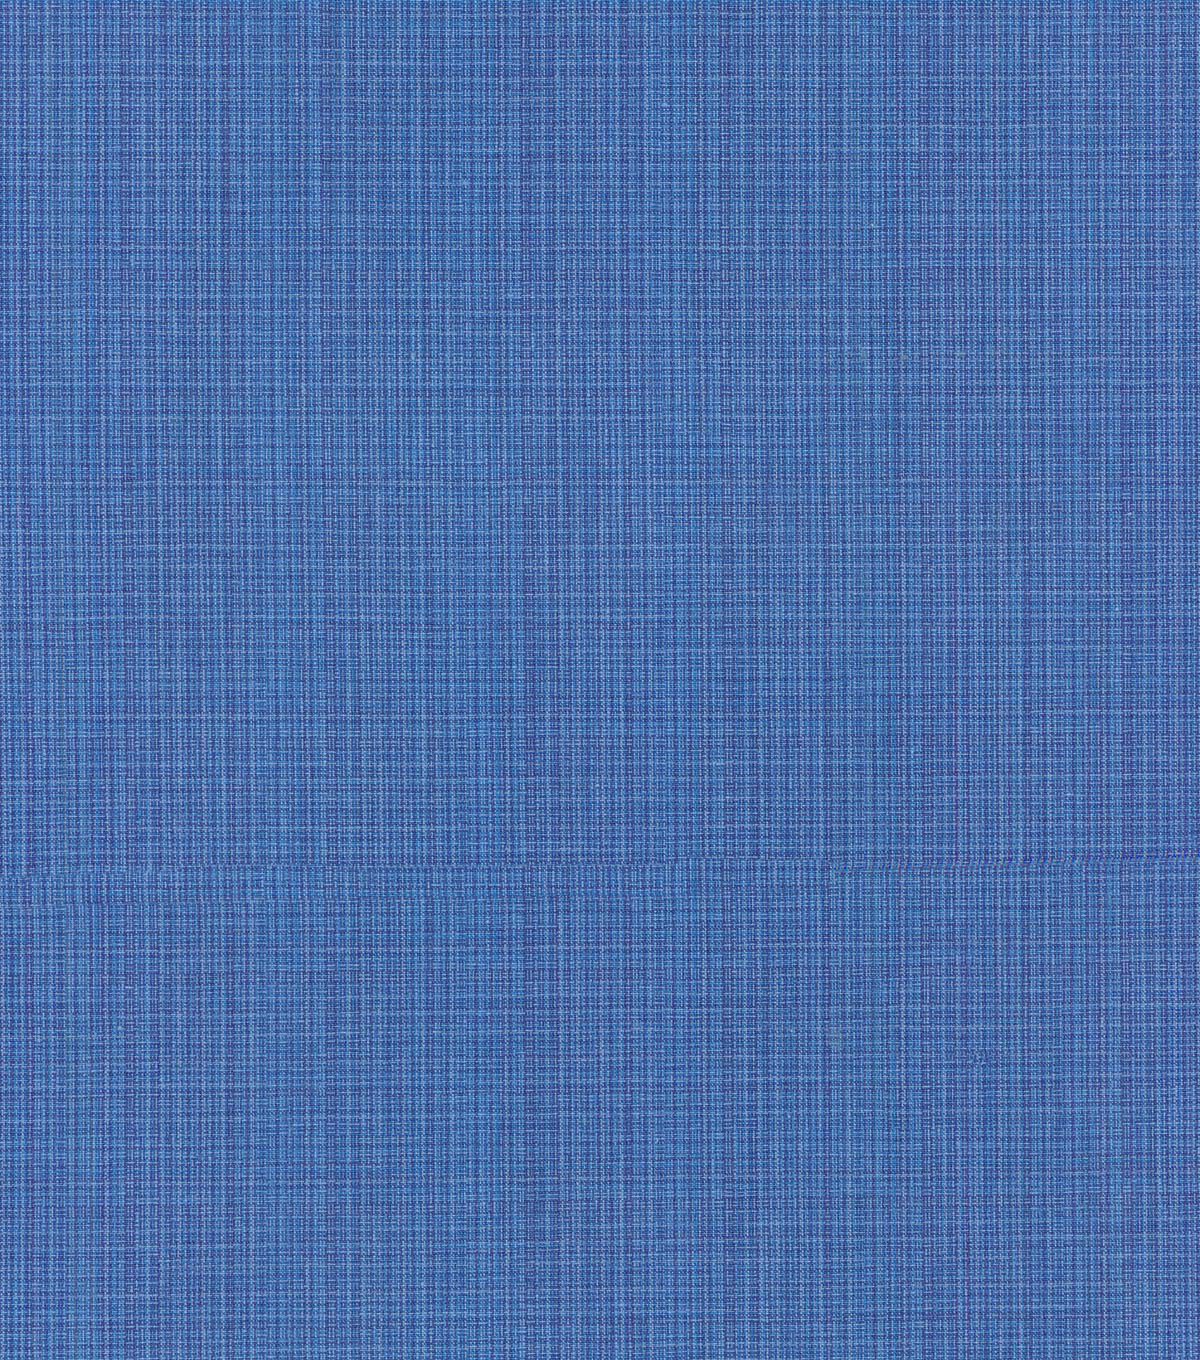 Home Decor 8\u0022x8\u0022 Swatch Fabric-Williamsburg Stratford Strie Bluebell